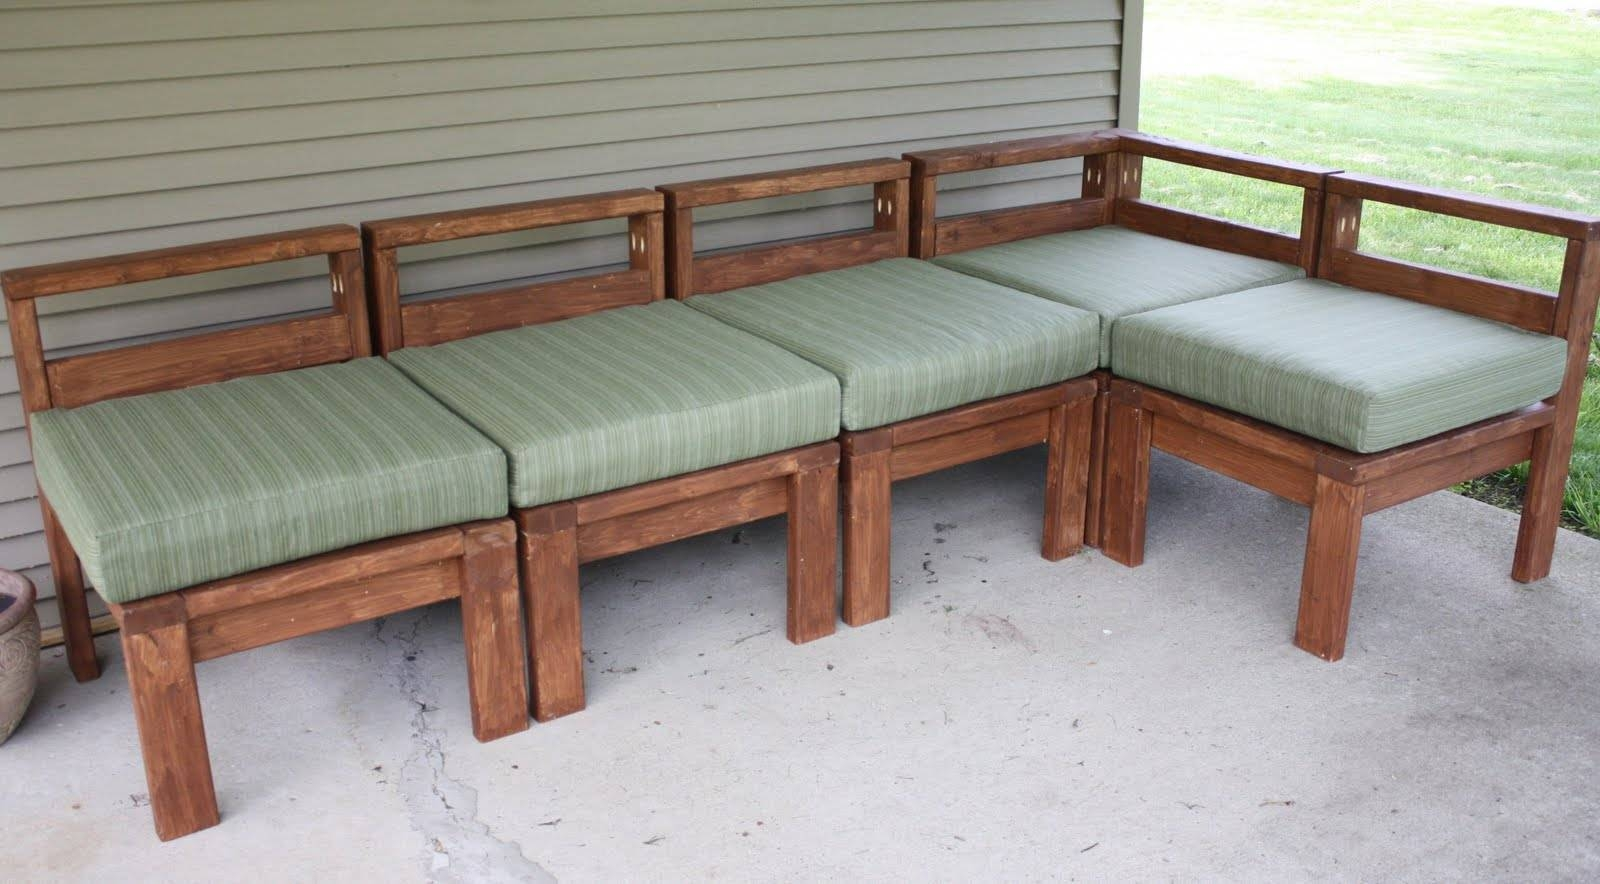 More Like Home: 2X4 Outdoor Sectional Intended For Building A Sectional Sofas (View 6 of 15)